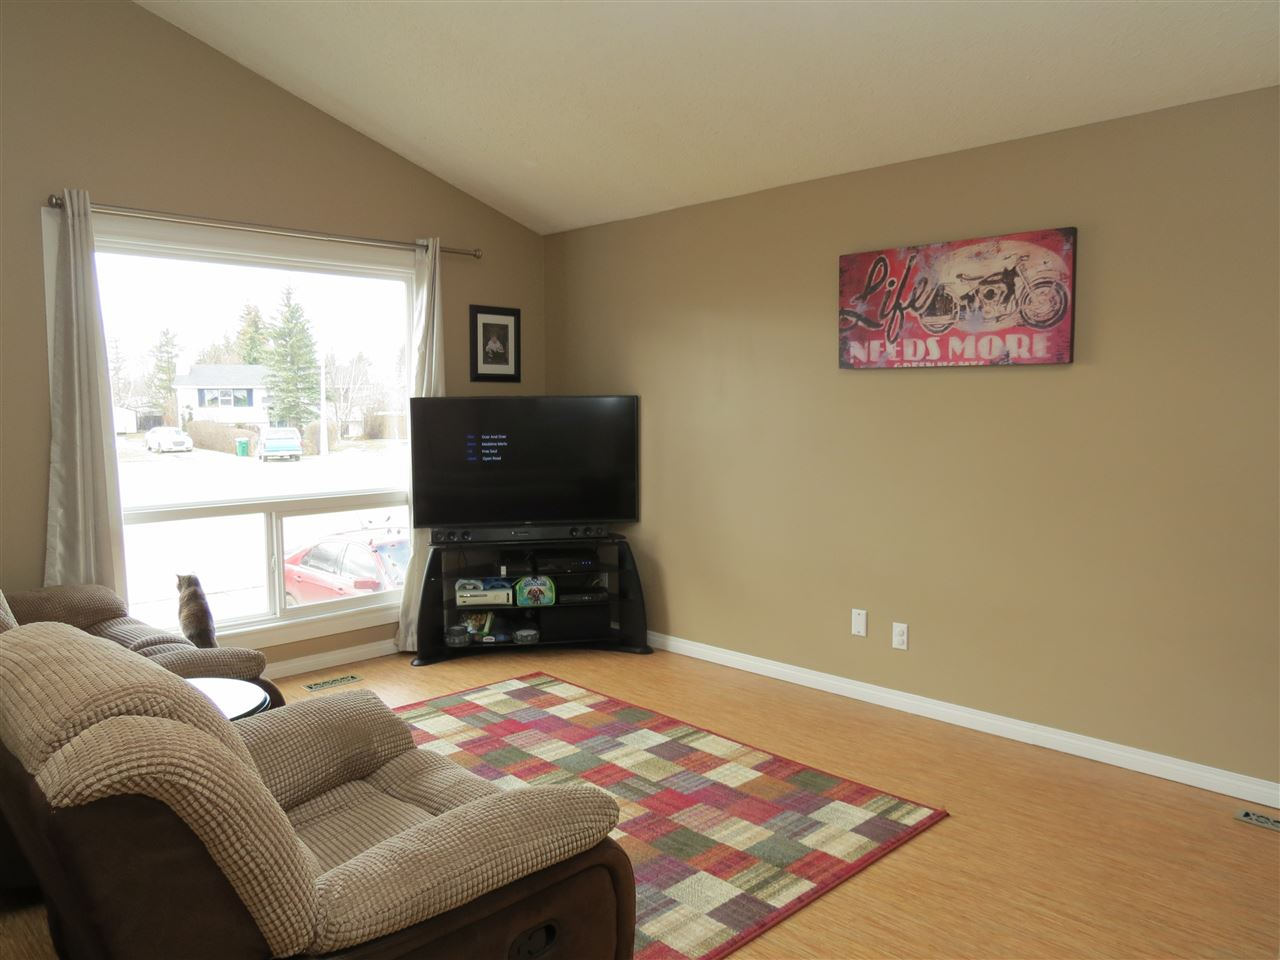 Photo 7: 9907 90 Street: Morinville House for sale : MLS(r) # E4057678